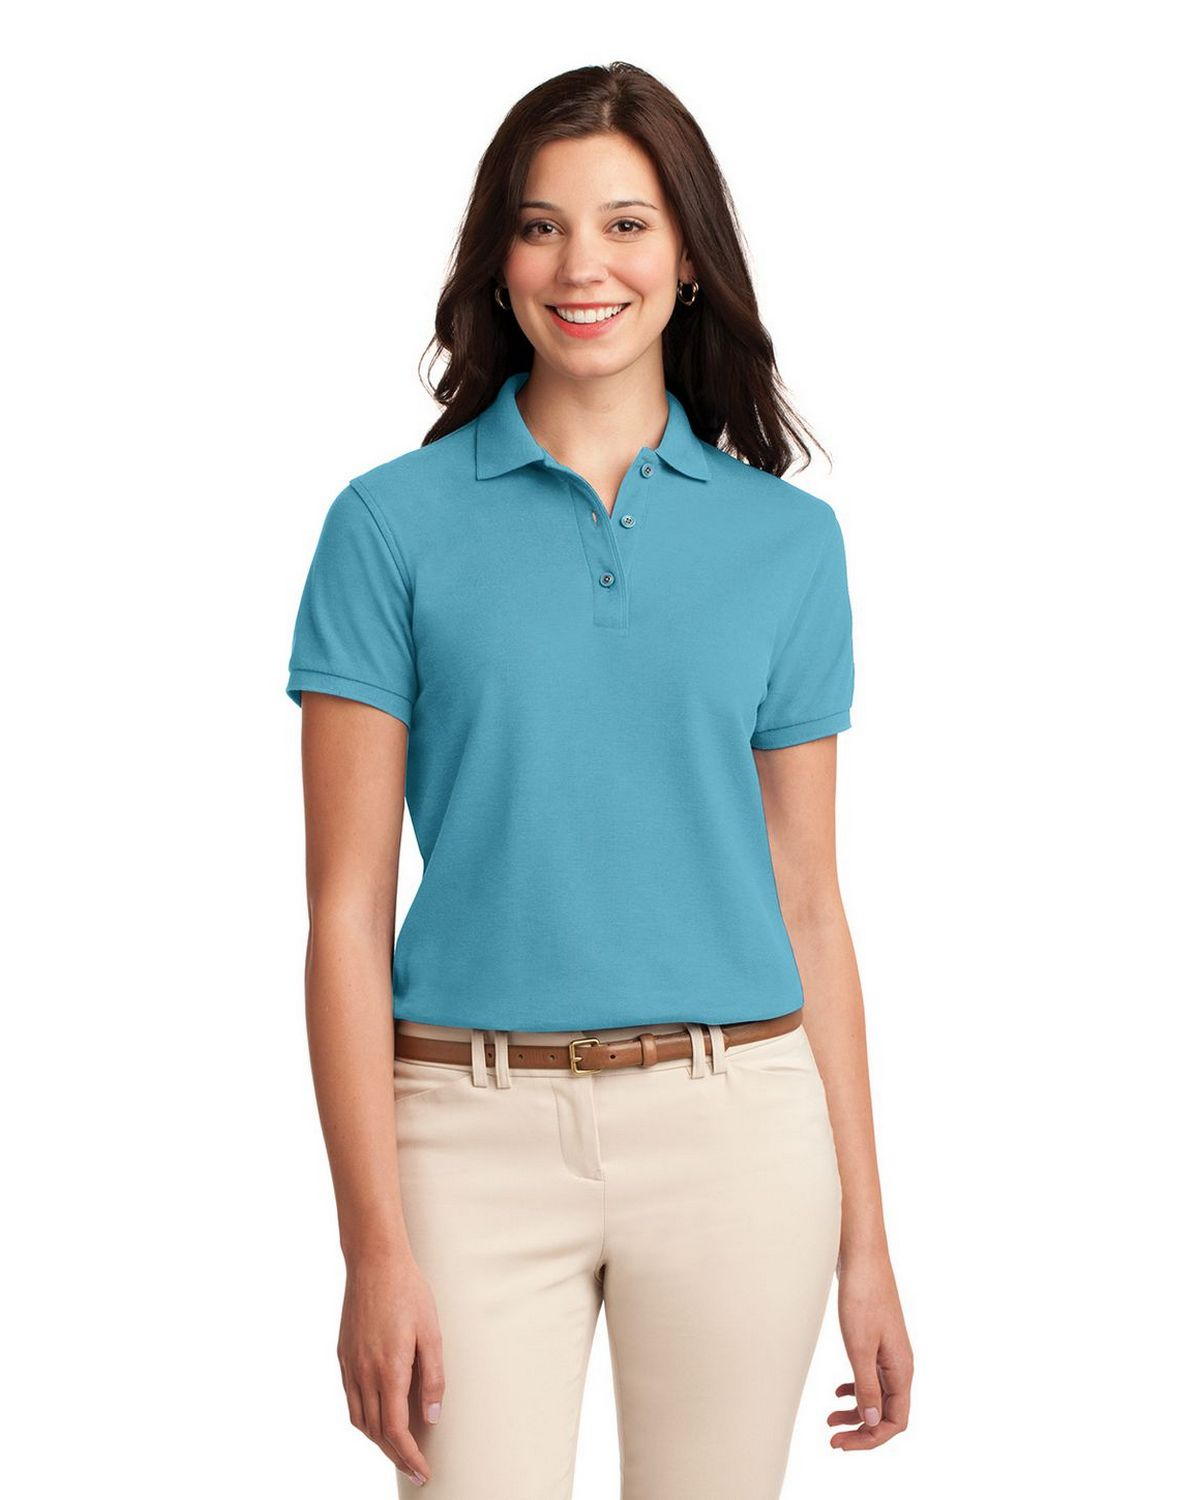 Port Authority L500 Women's Silk Touch Polo - Maui Blue - XS #silk